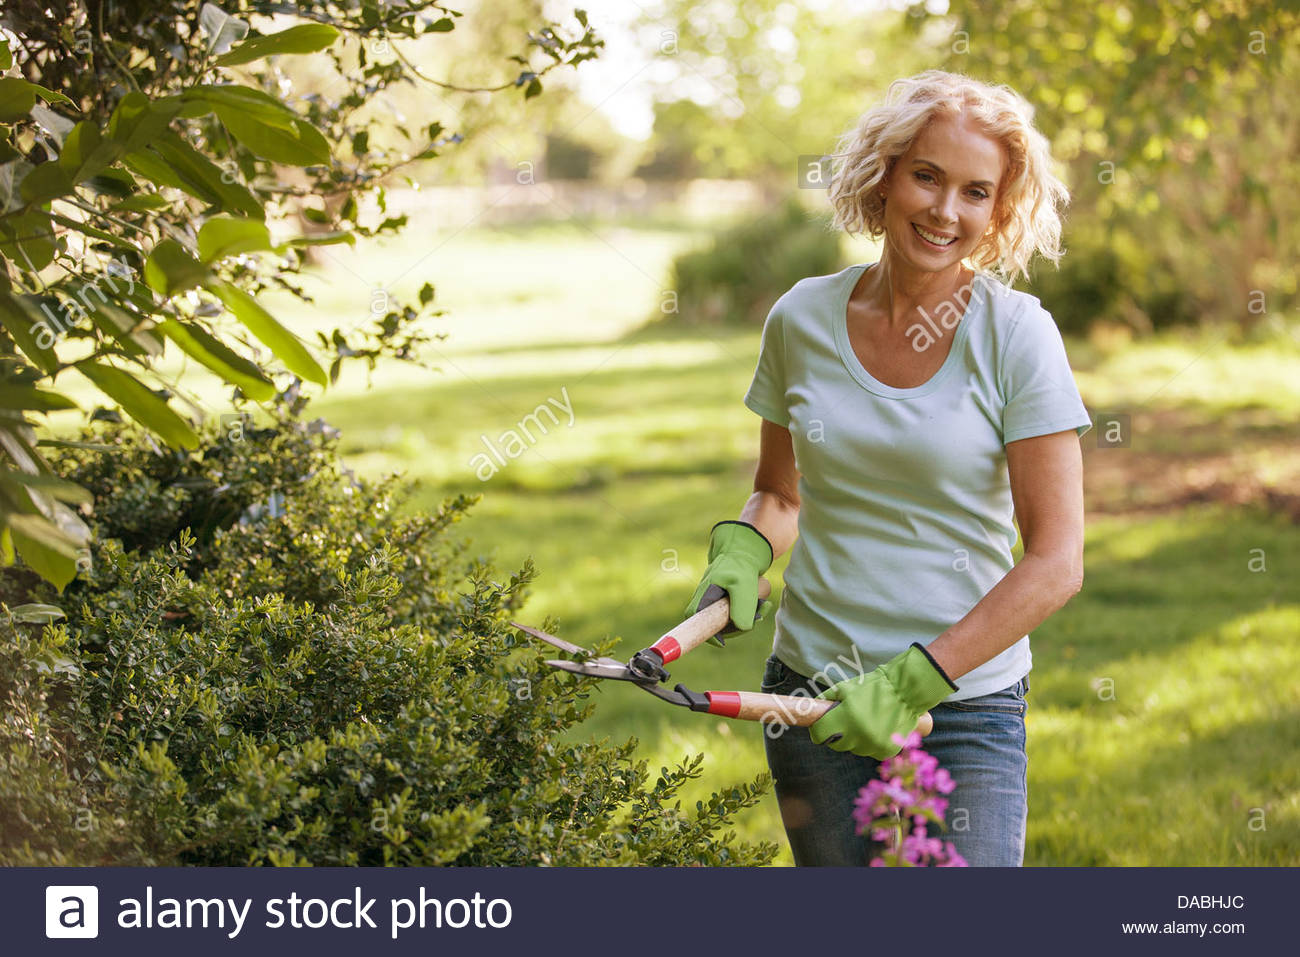 A mature woman trimming a hedge with garden shears - Stock Image